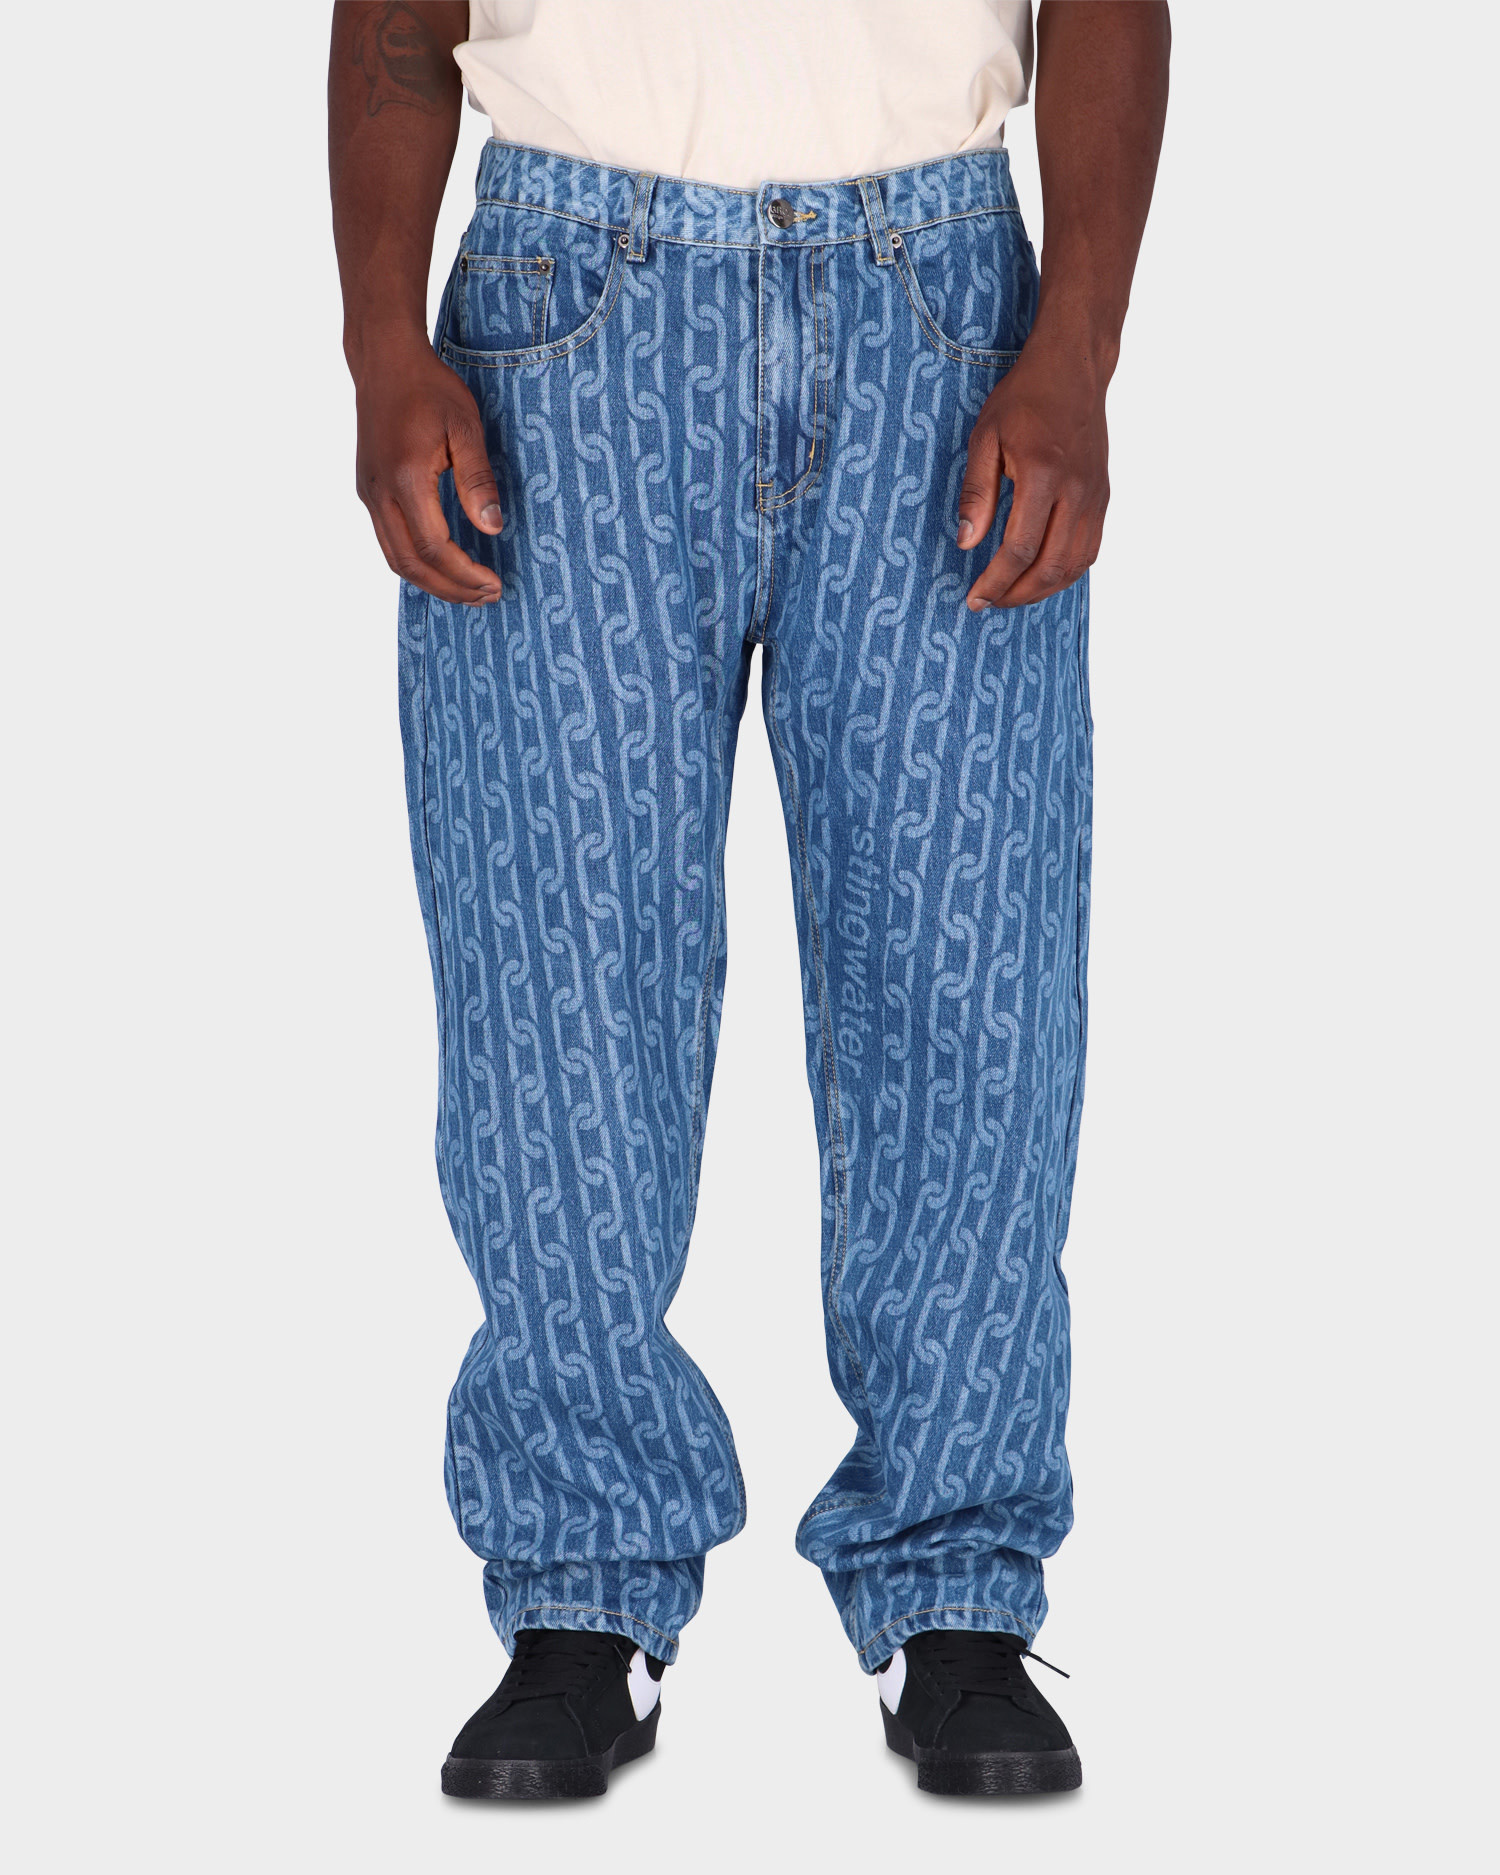 Stingwater Chain Jeans Blue